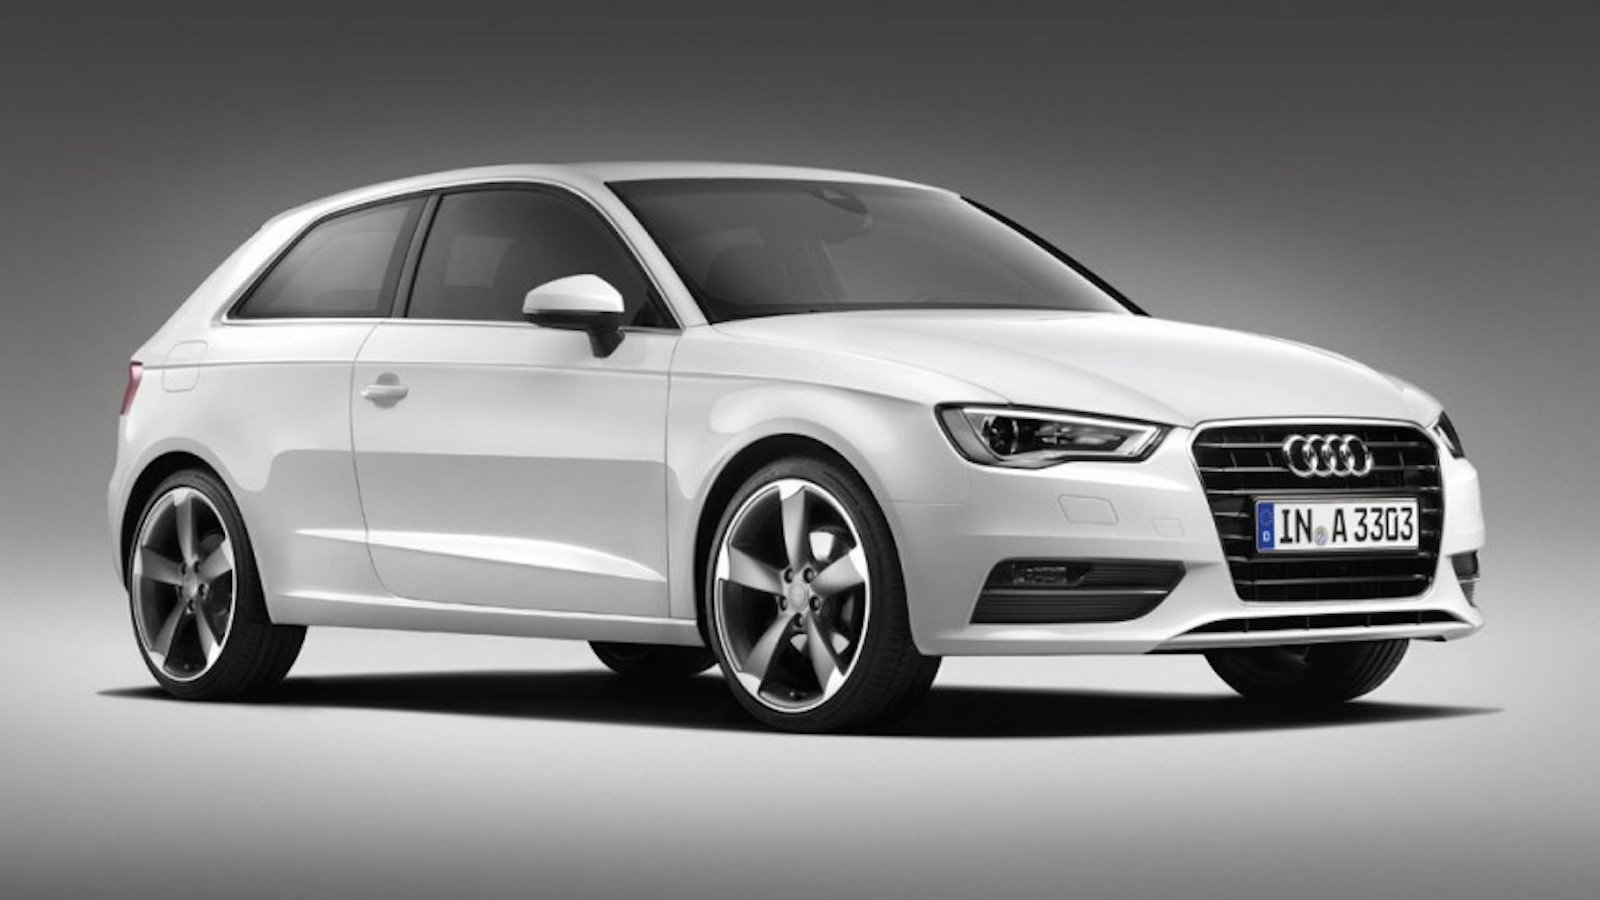 5 Best Pre-Owned Audis on the Market